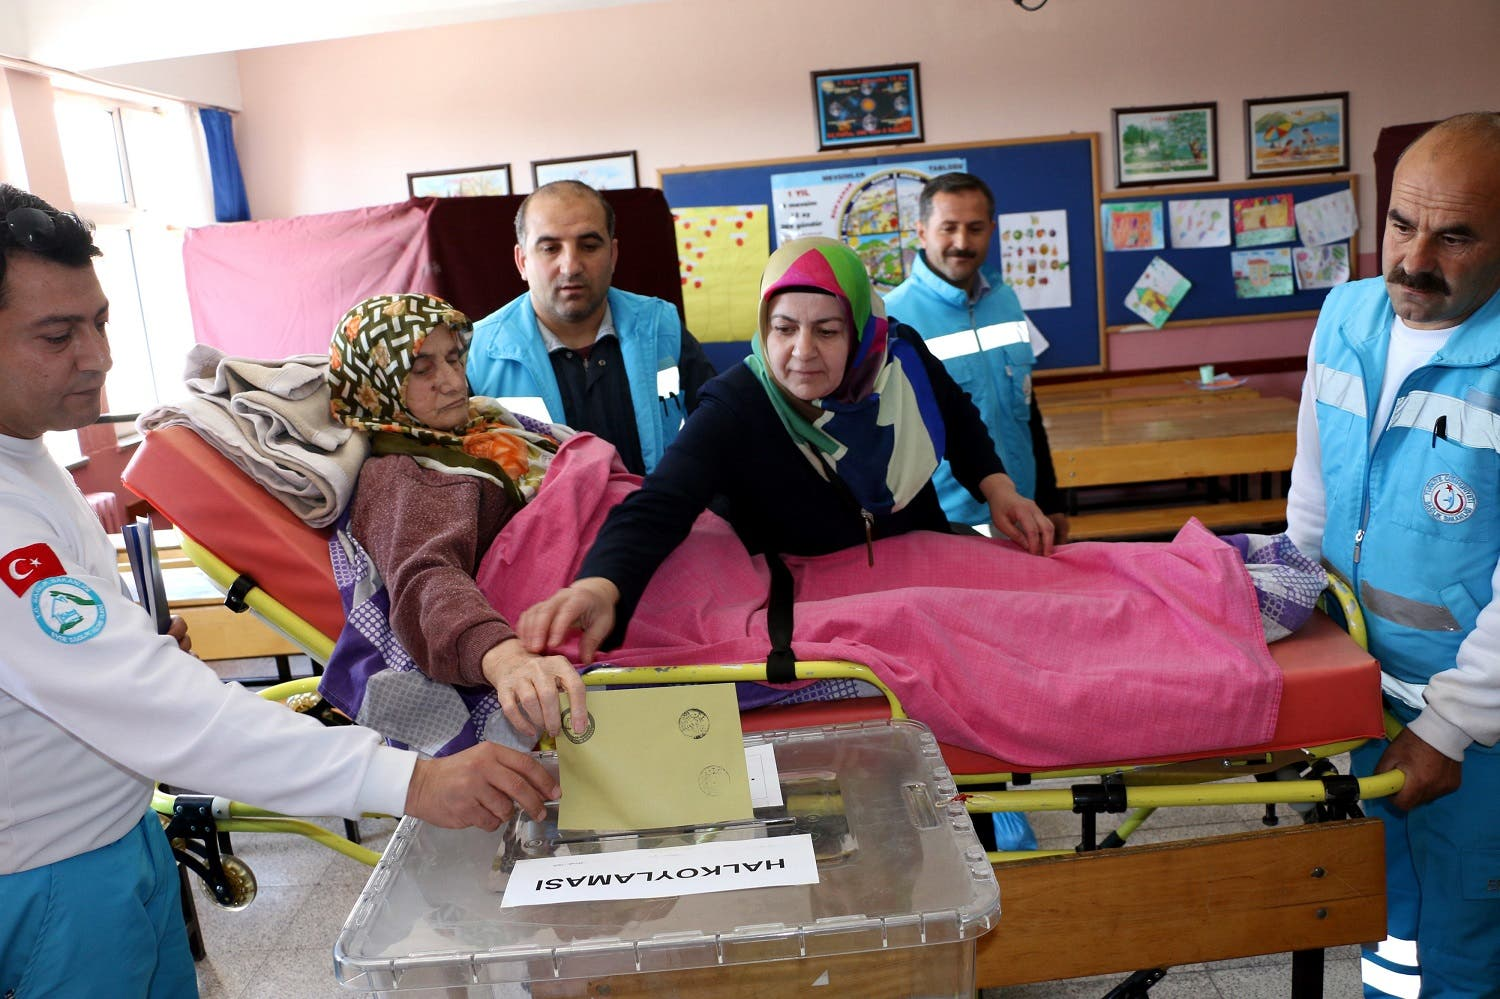 Fatma Canpolat, a paralysed woman who was wheeled into a polling station, casts her ballot in Erzincan, Turkey, Sunday, April 16, 2017 (Photo: Depo Photo via AP)